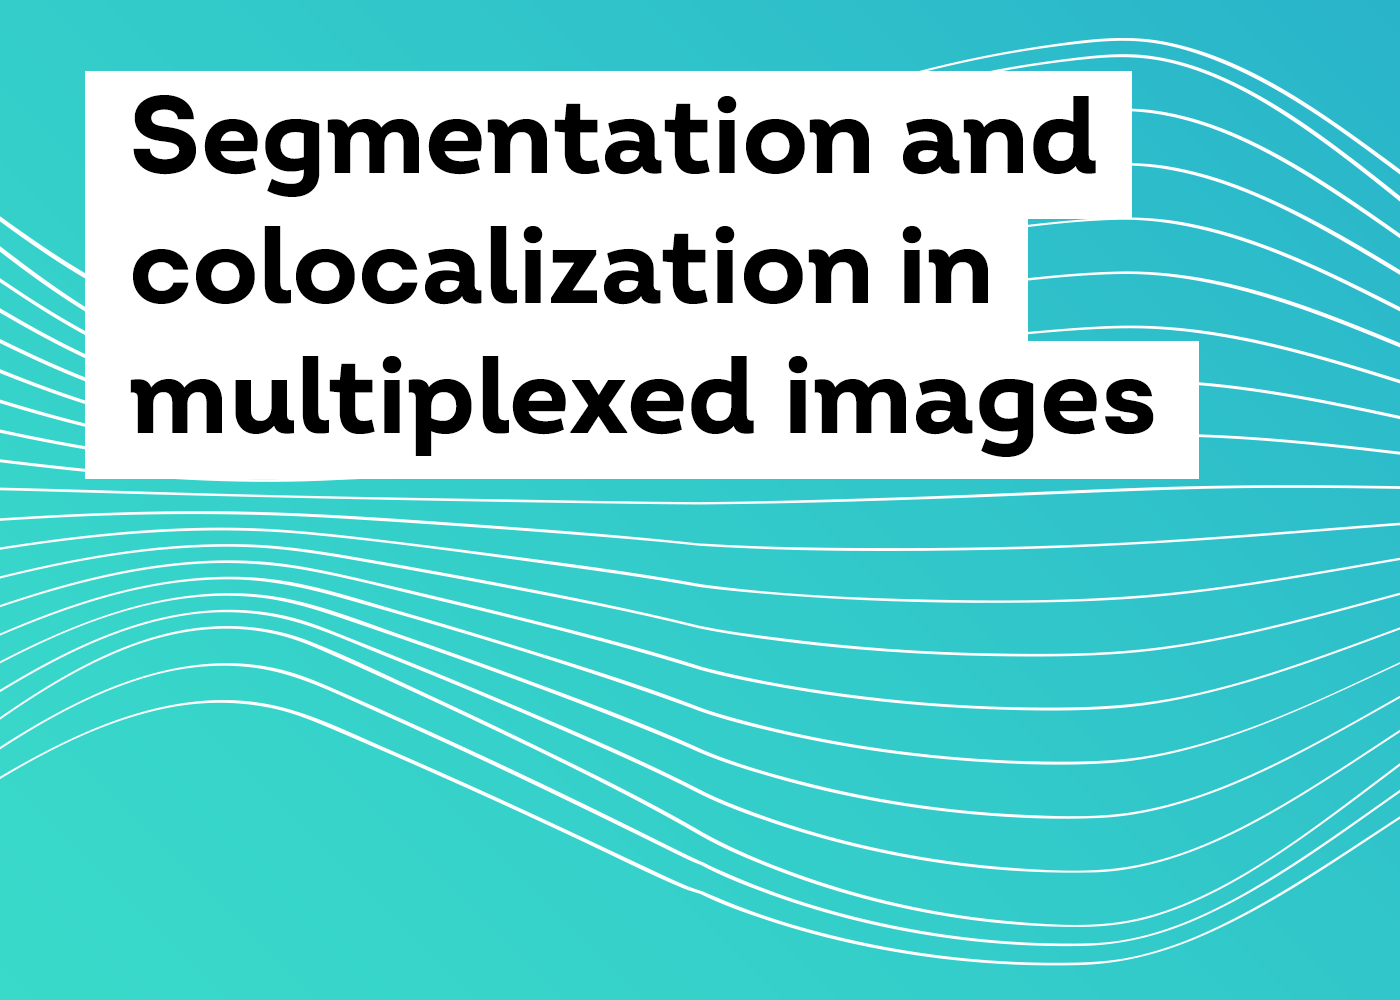 Segmentation and colocalization in multiplexed images